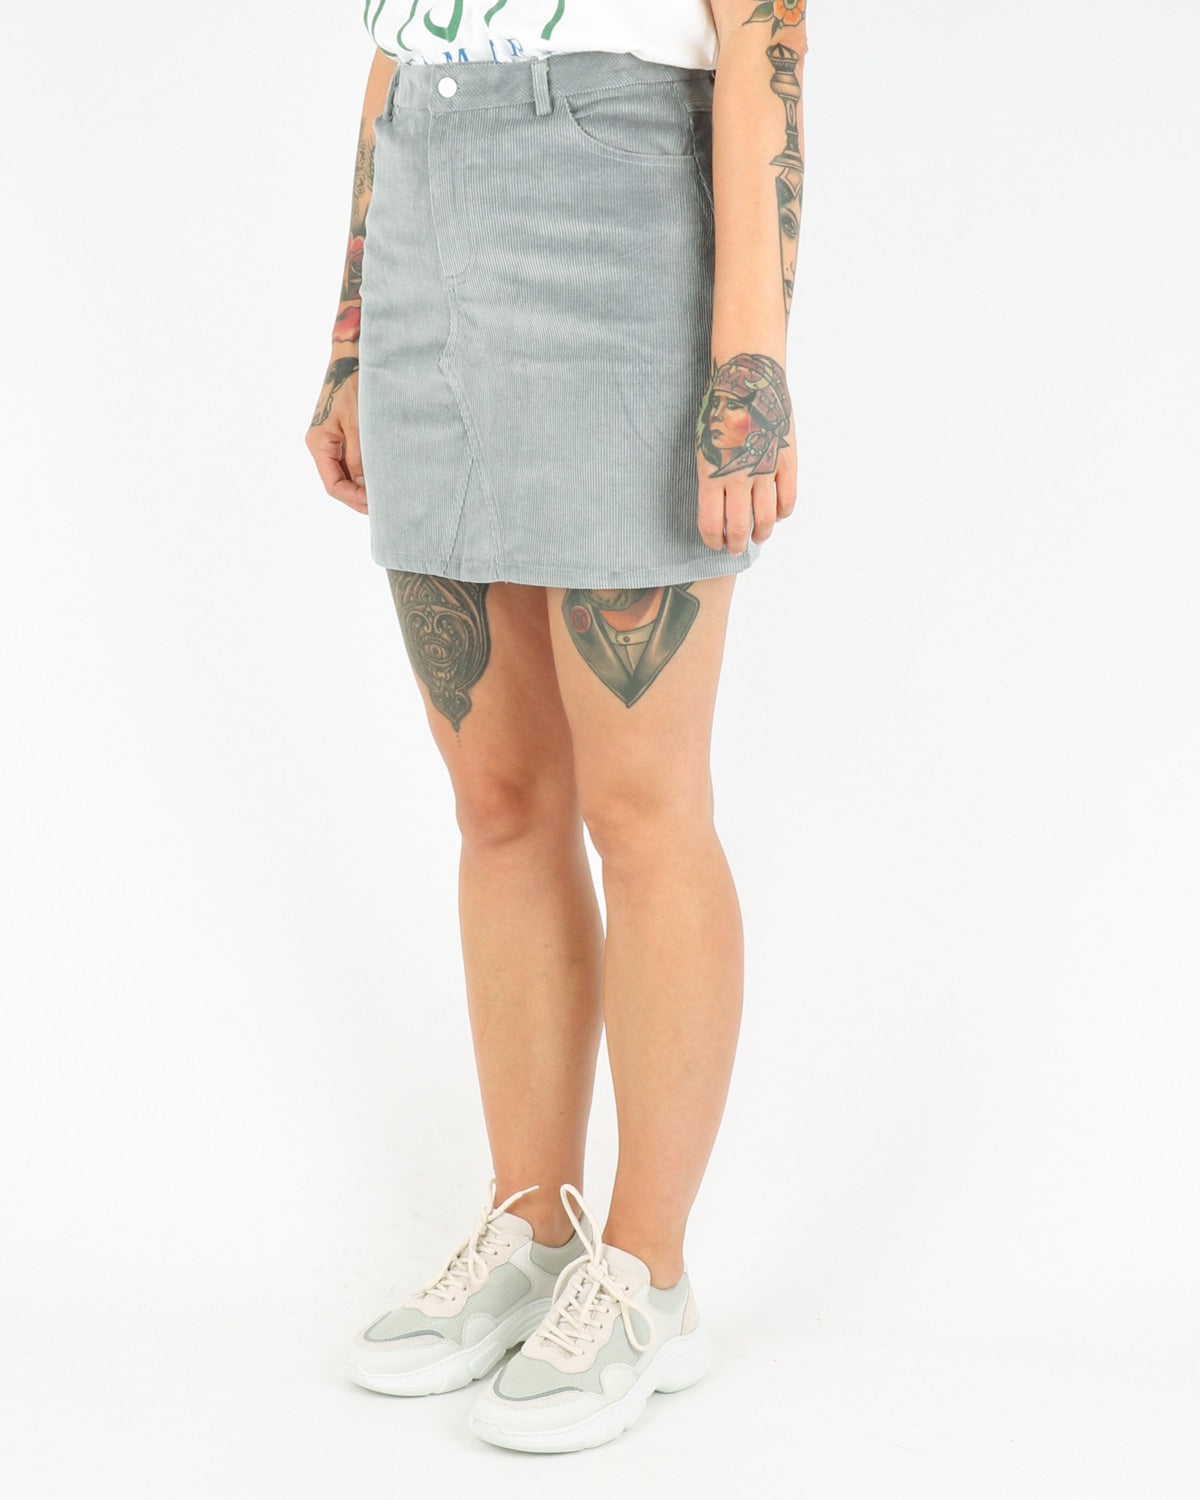 pop cph_curdory skirt_grey_2_4